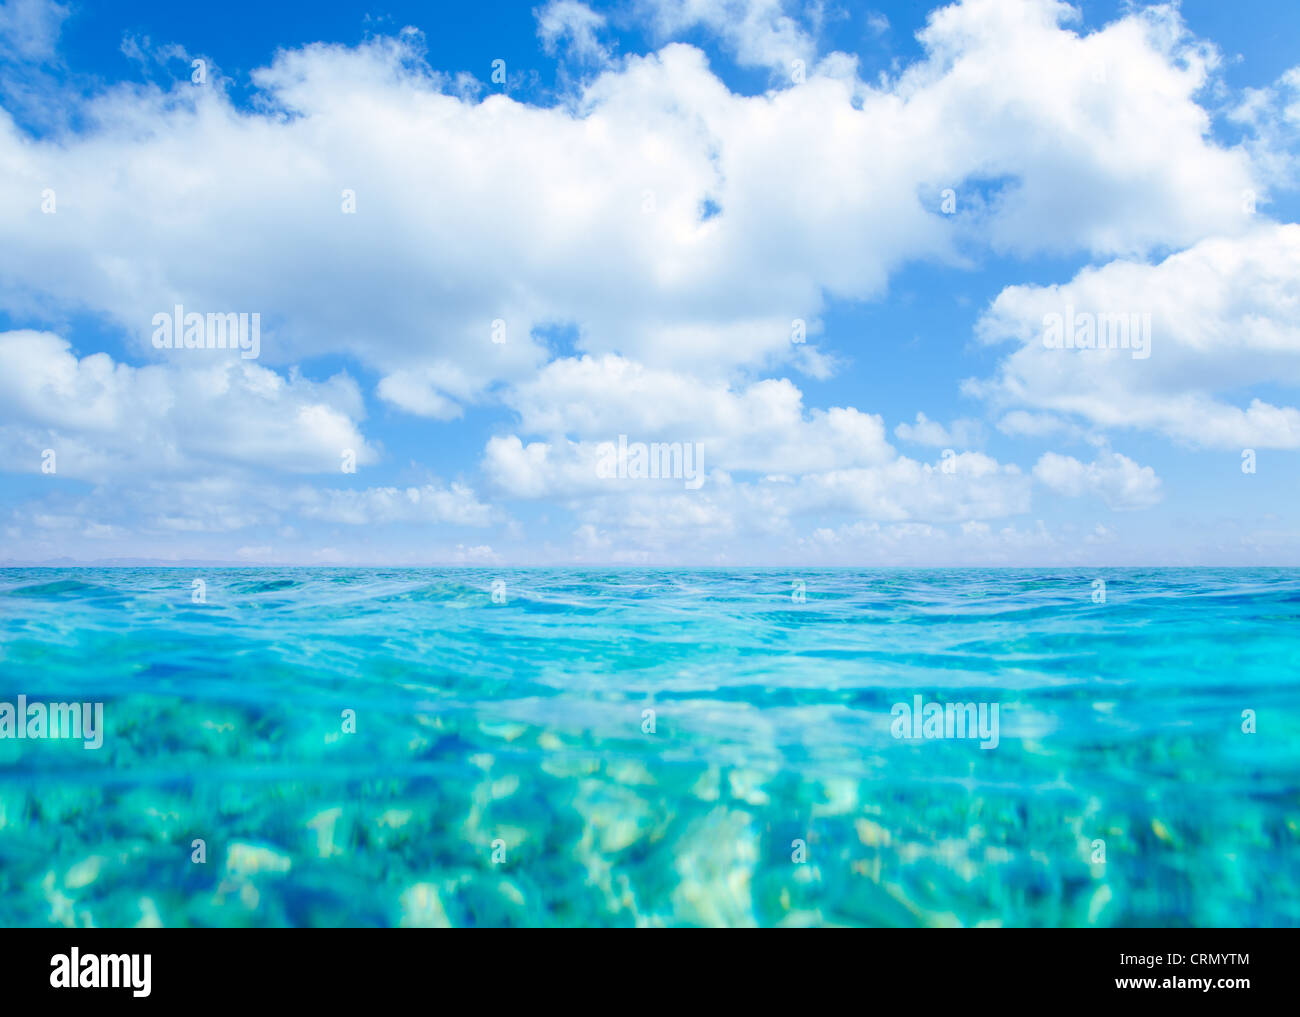 Belearic islands turquoise sea under summer blue sky in tropical beach - Stock Image